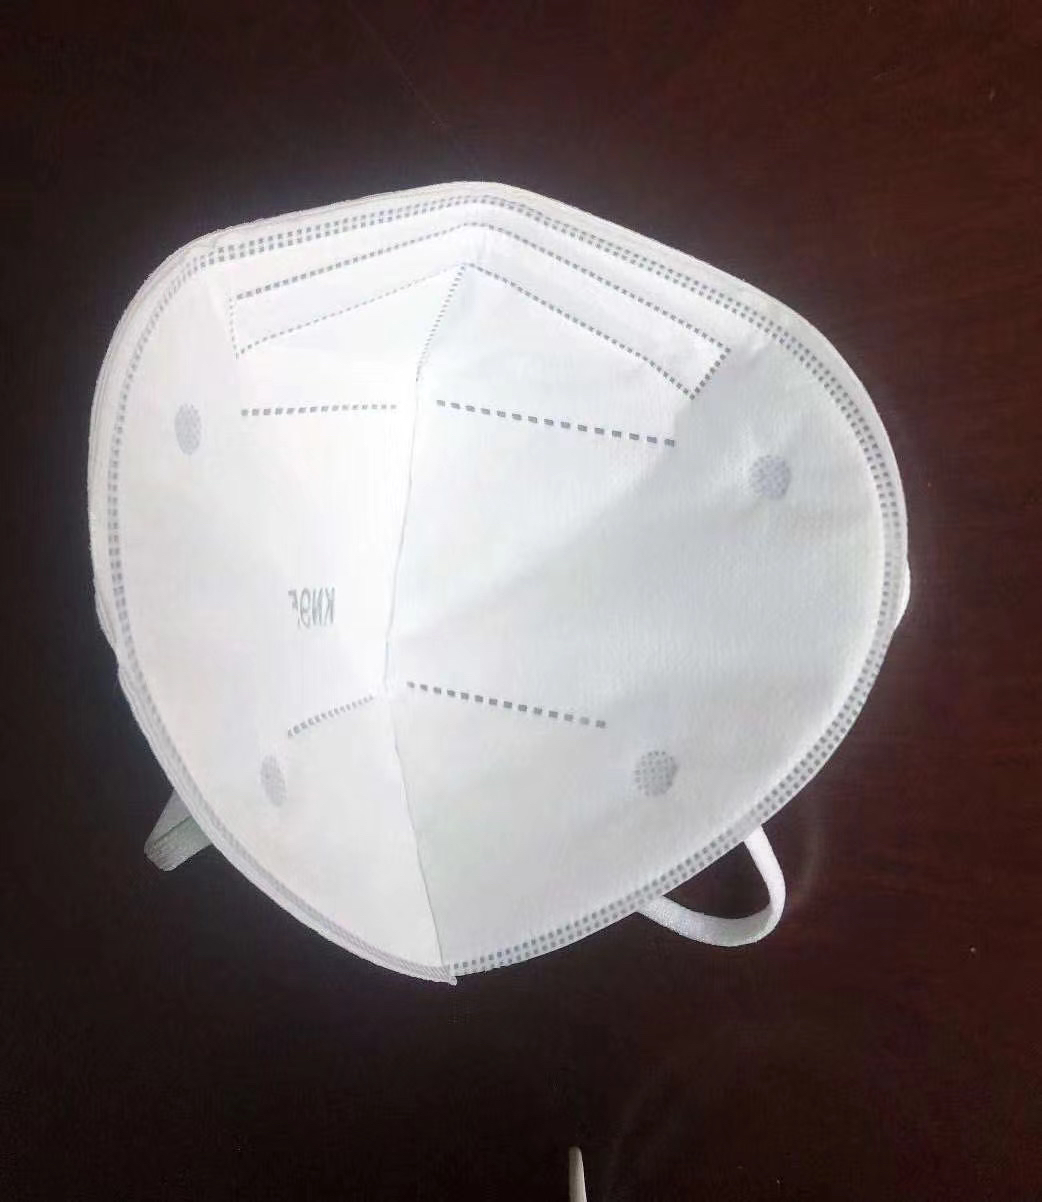 NXE Brand KN95 mask 5ply disposable protective mask